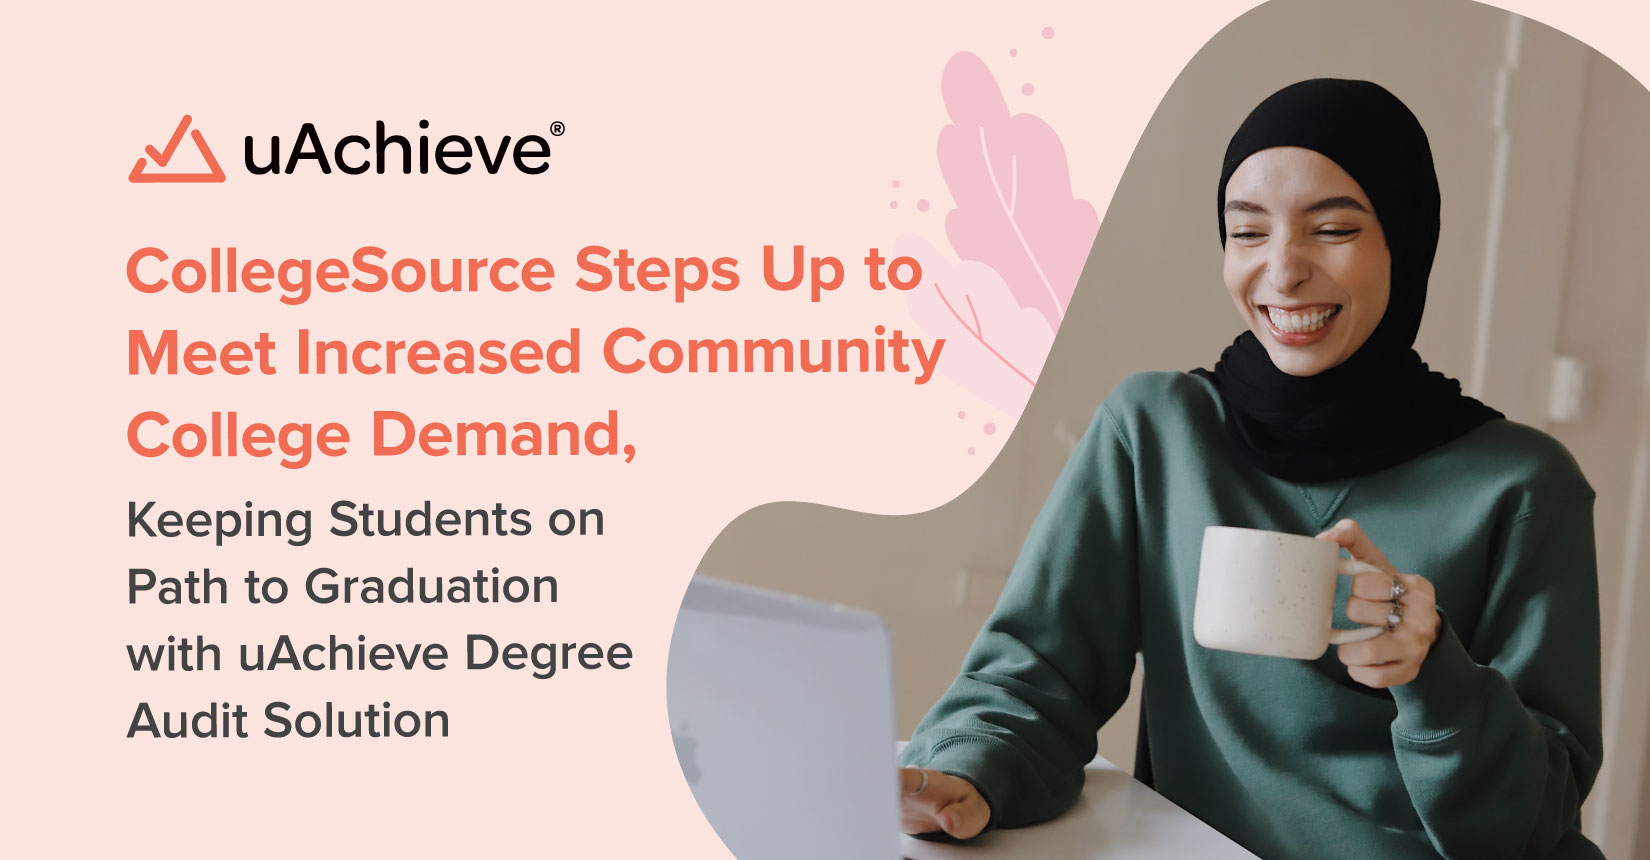 uAchieve-CollegeSource-Meets-Increased-Community-College-Demand